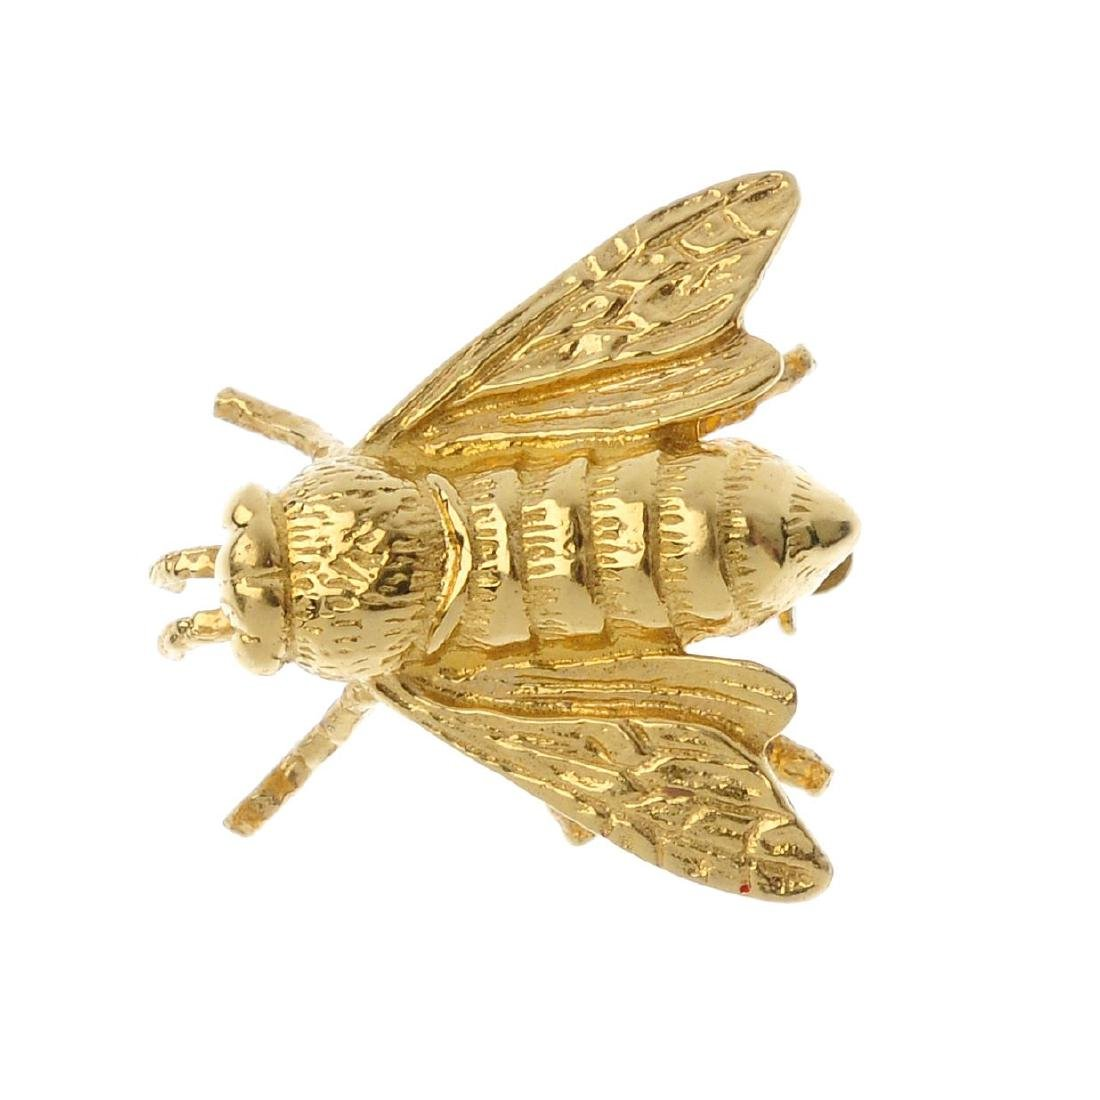 An 18ct gold brooch. Designed as a honey bee, with